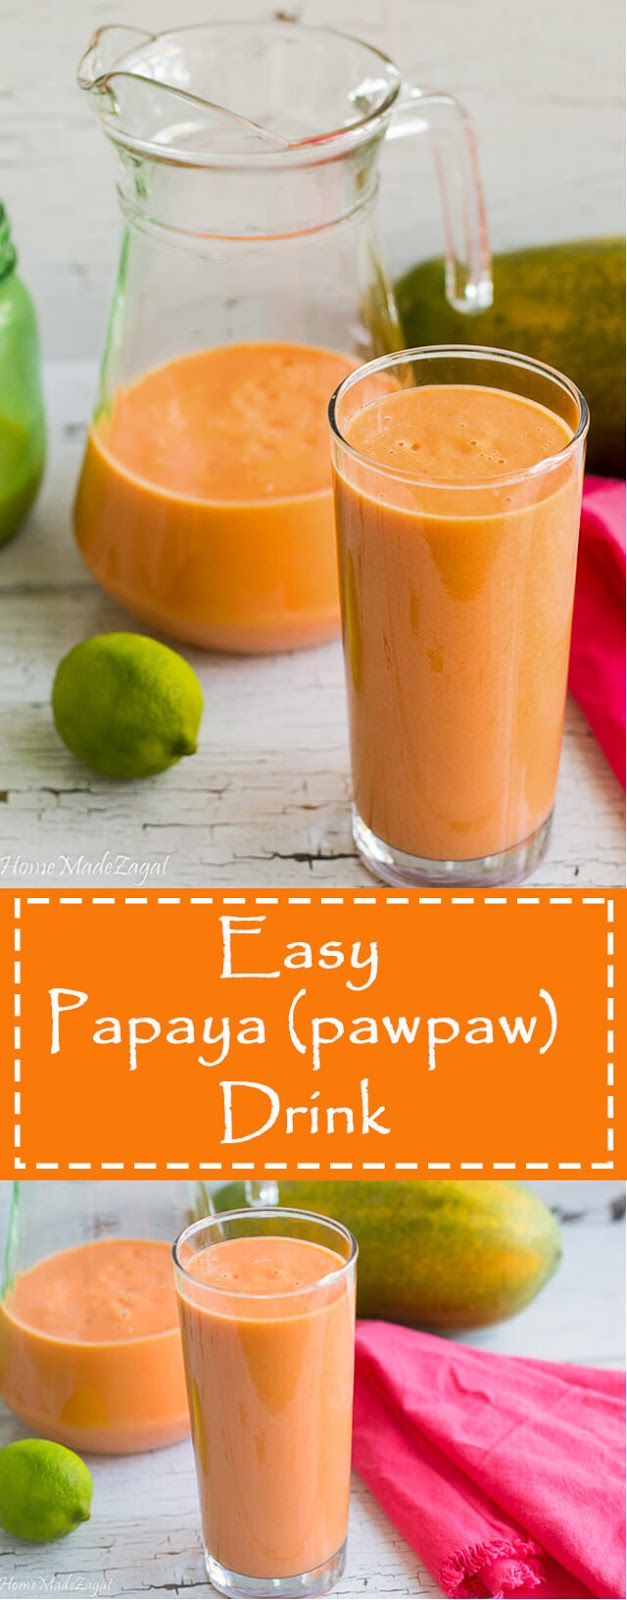 How to make Pawpaw Drink